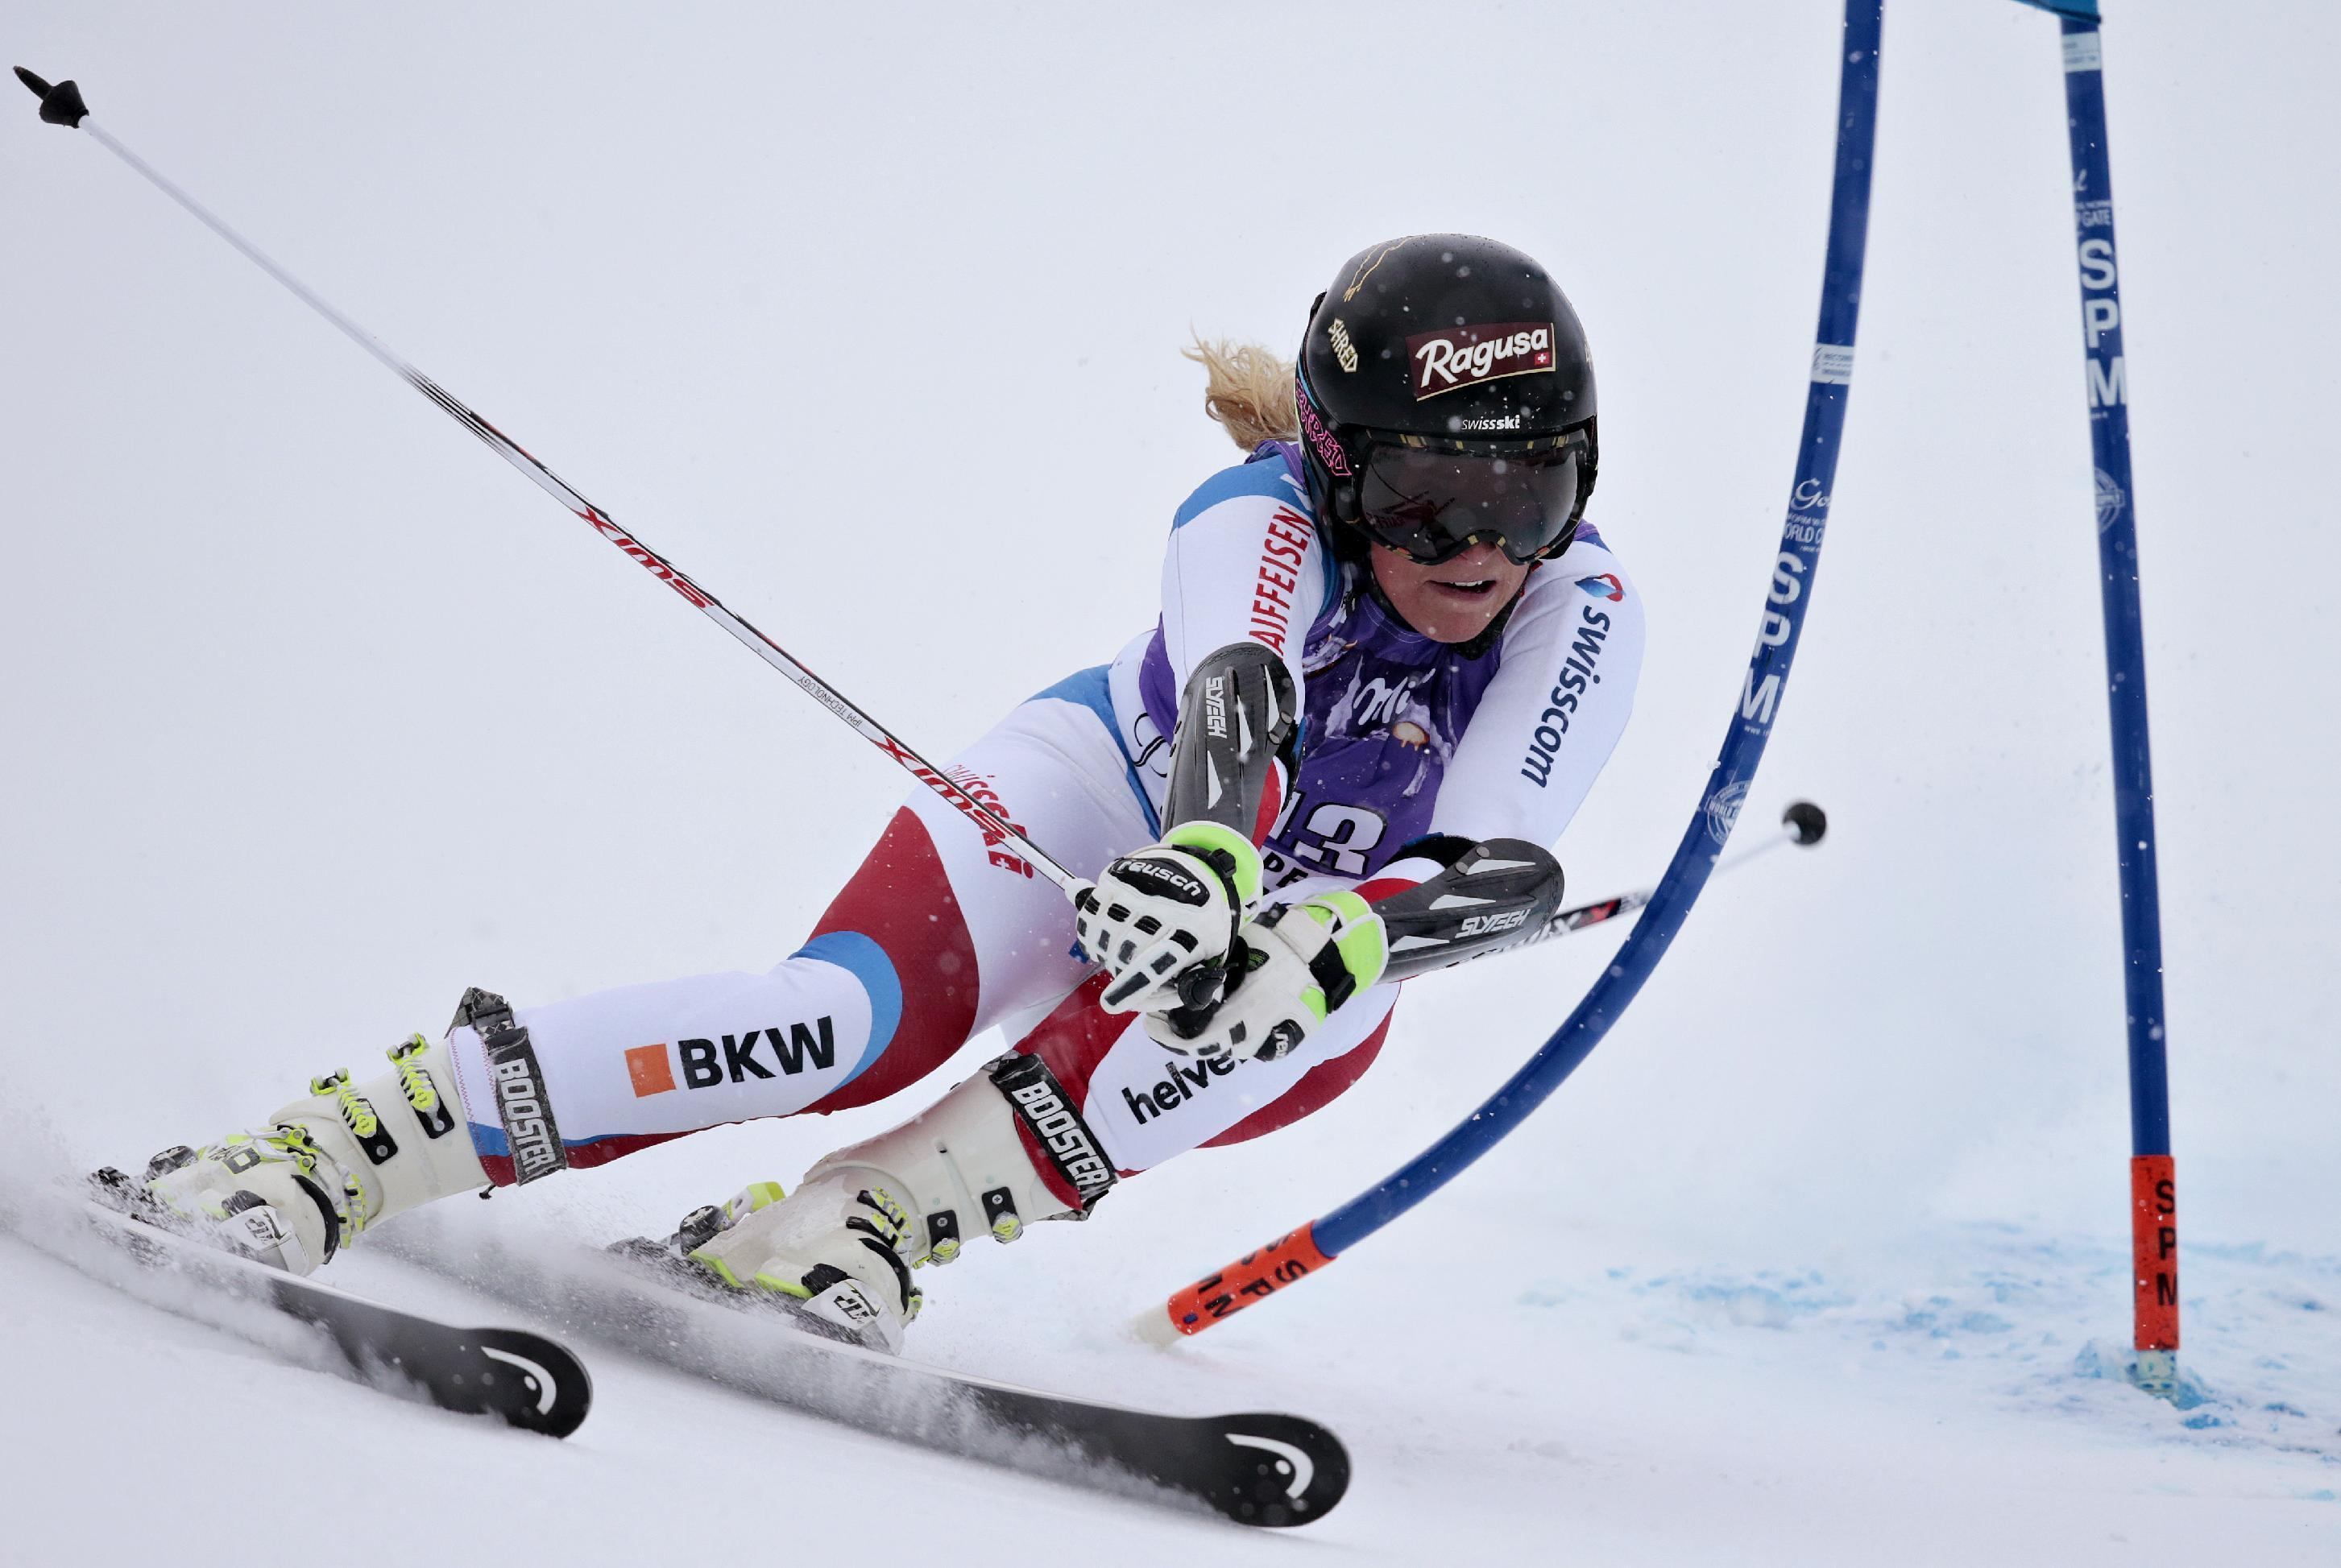 Gut wins giant slalom as Shiffrin crashes near finish